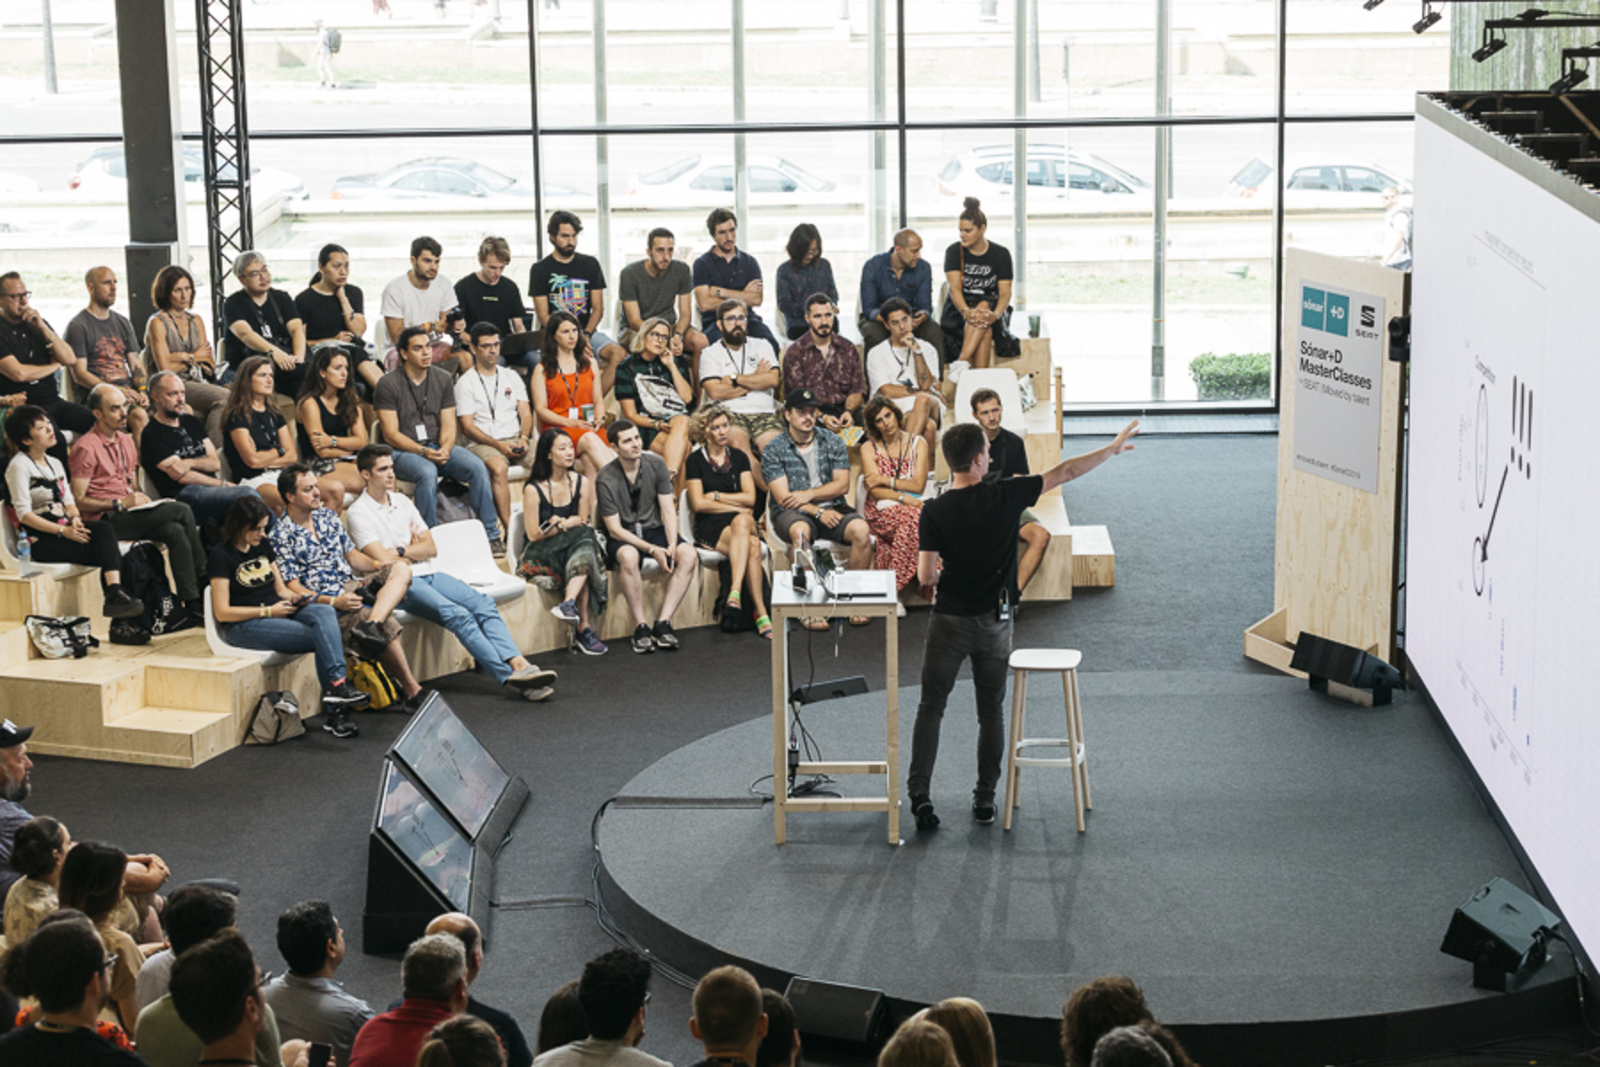 Limits of the learning, by Kyle McDonald - Sónar+D MasterClasses by SEAT